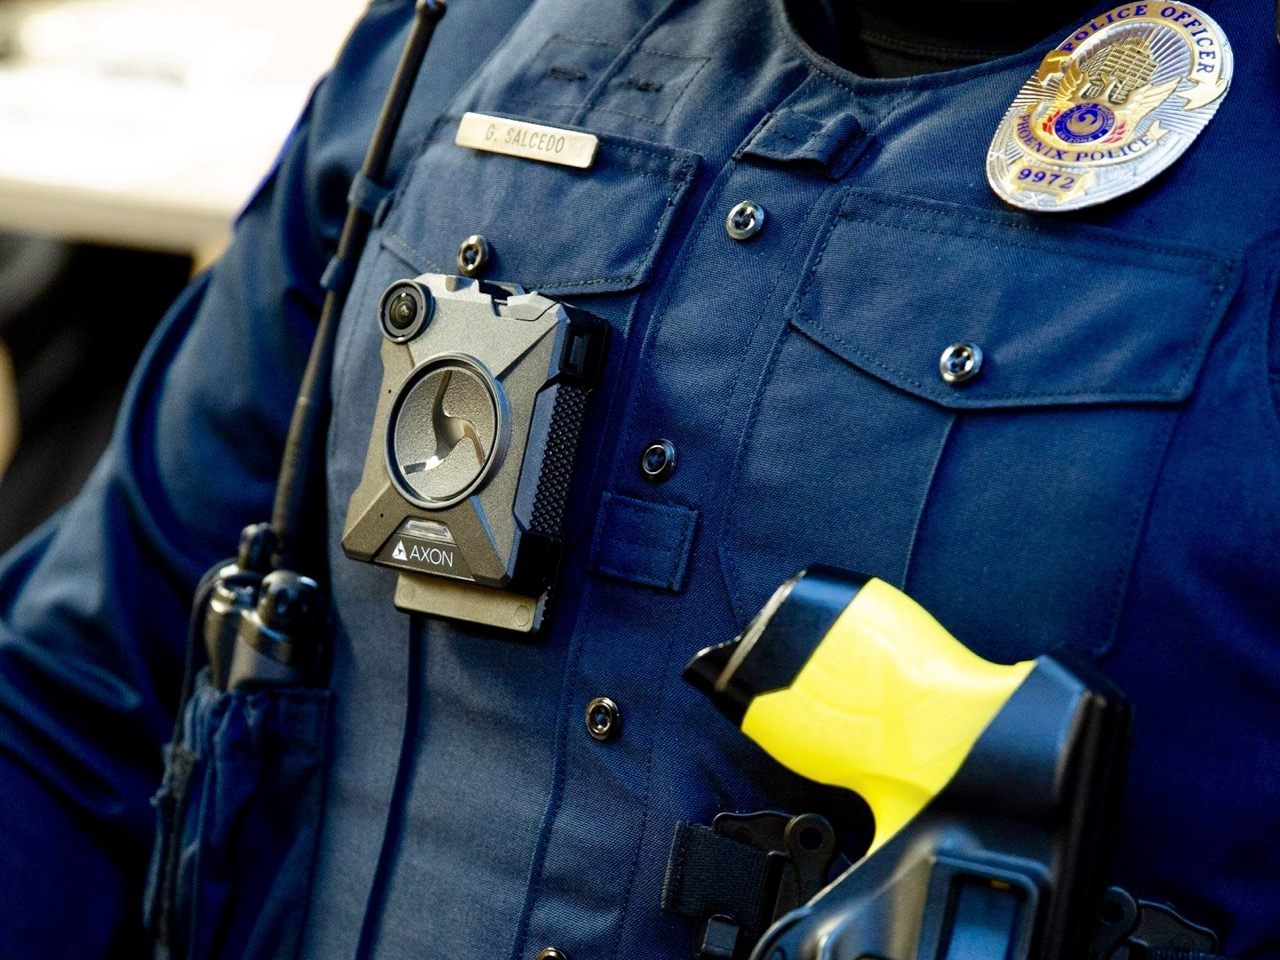 Cronkite News: More body cameras in deadliest city for police shootings